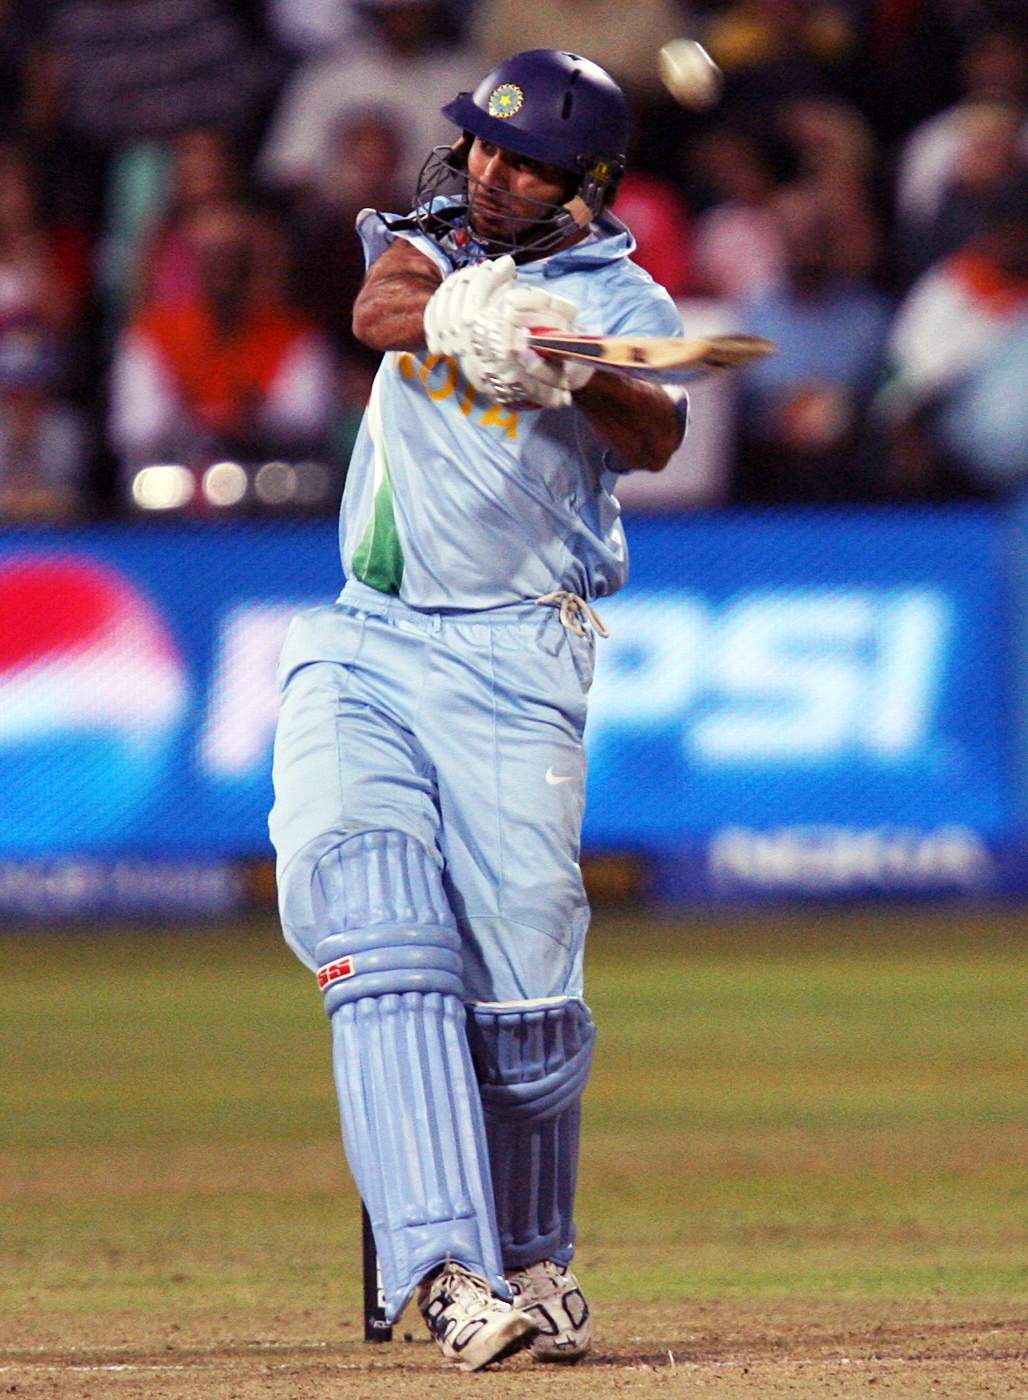 Yuvraj Singh is the only batsman to hit 6 sixes in an over versus England in the 2007 World Twenty20. (Photo: AFP)